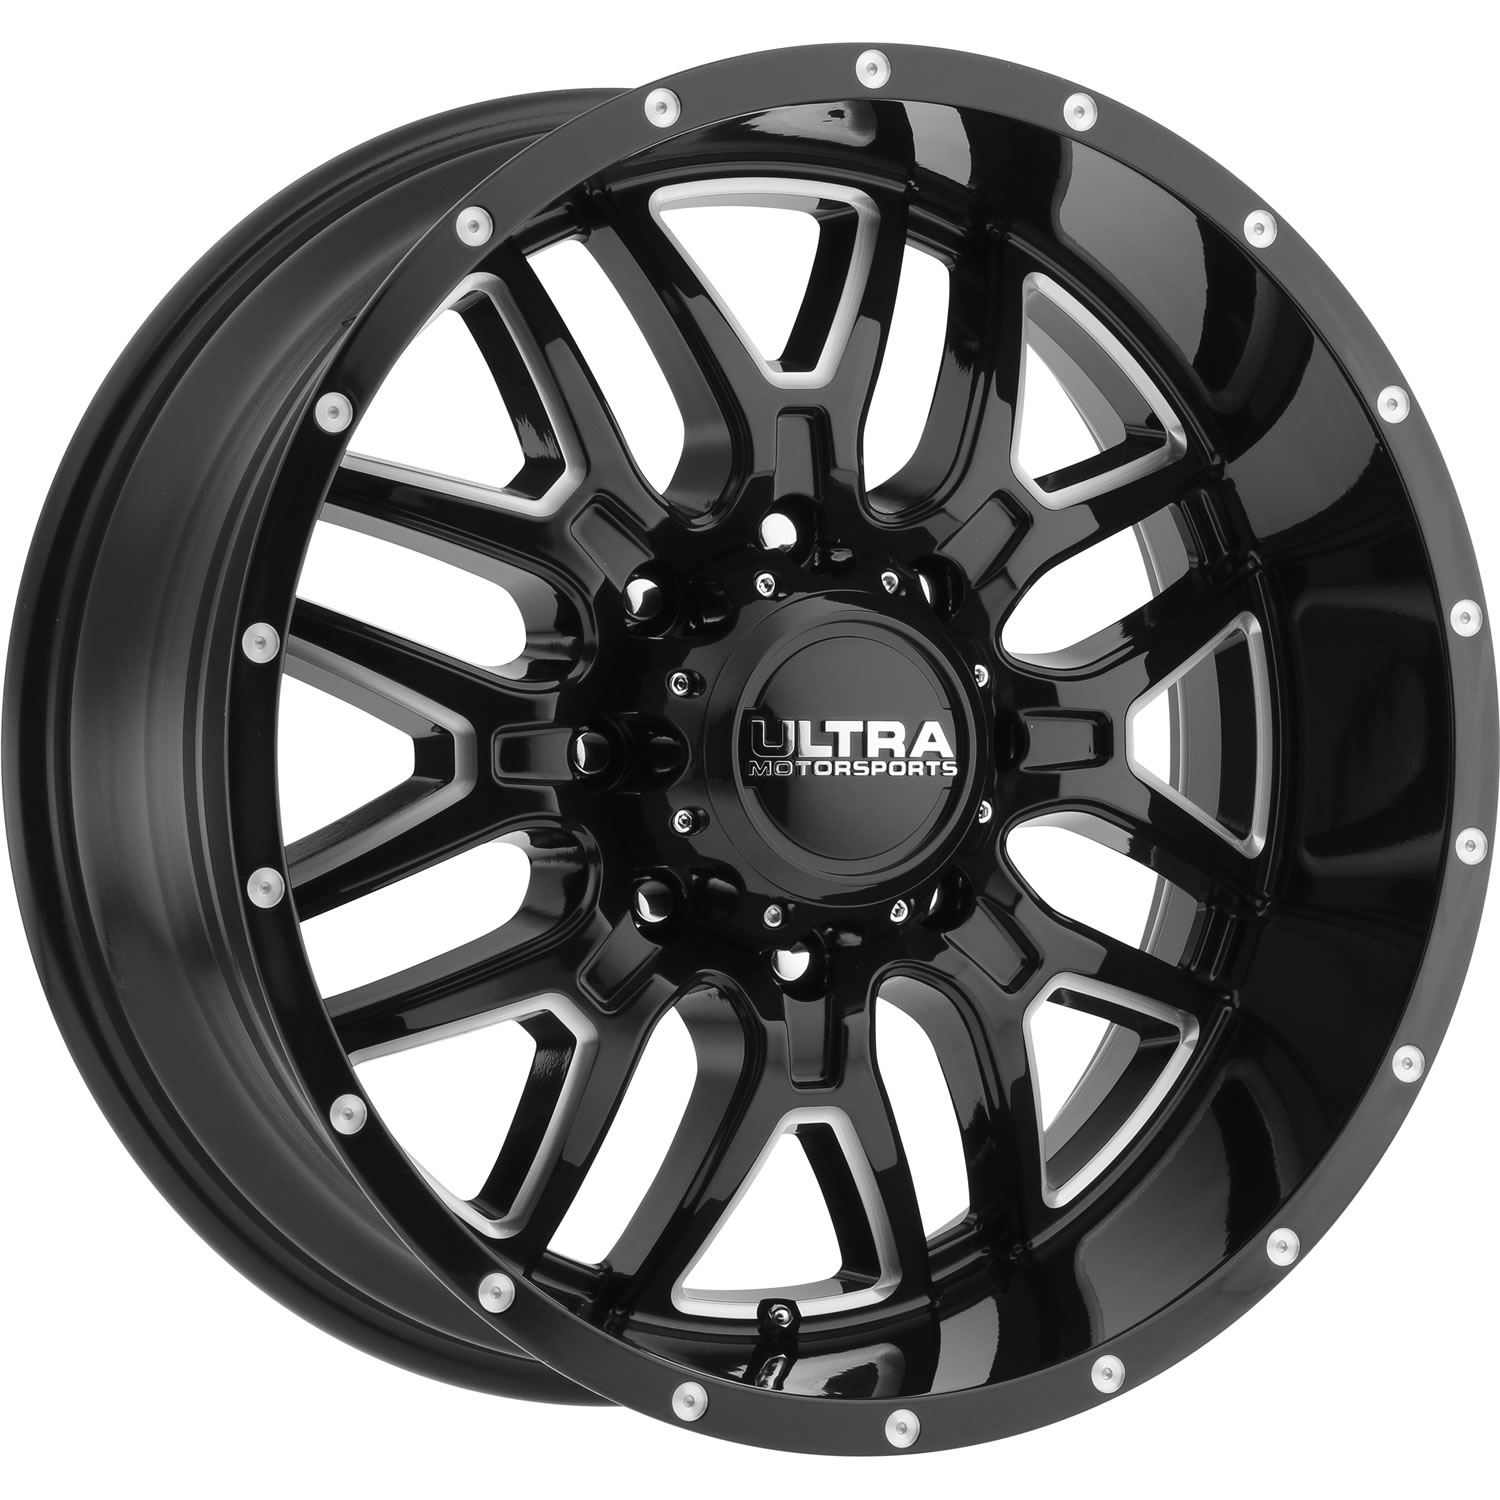 Ultra Hunter 20x10  25mm | 203 2198BM25